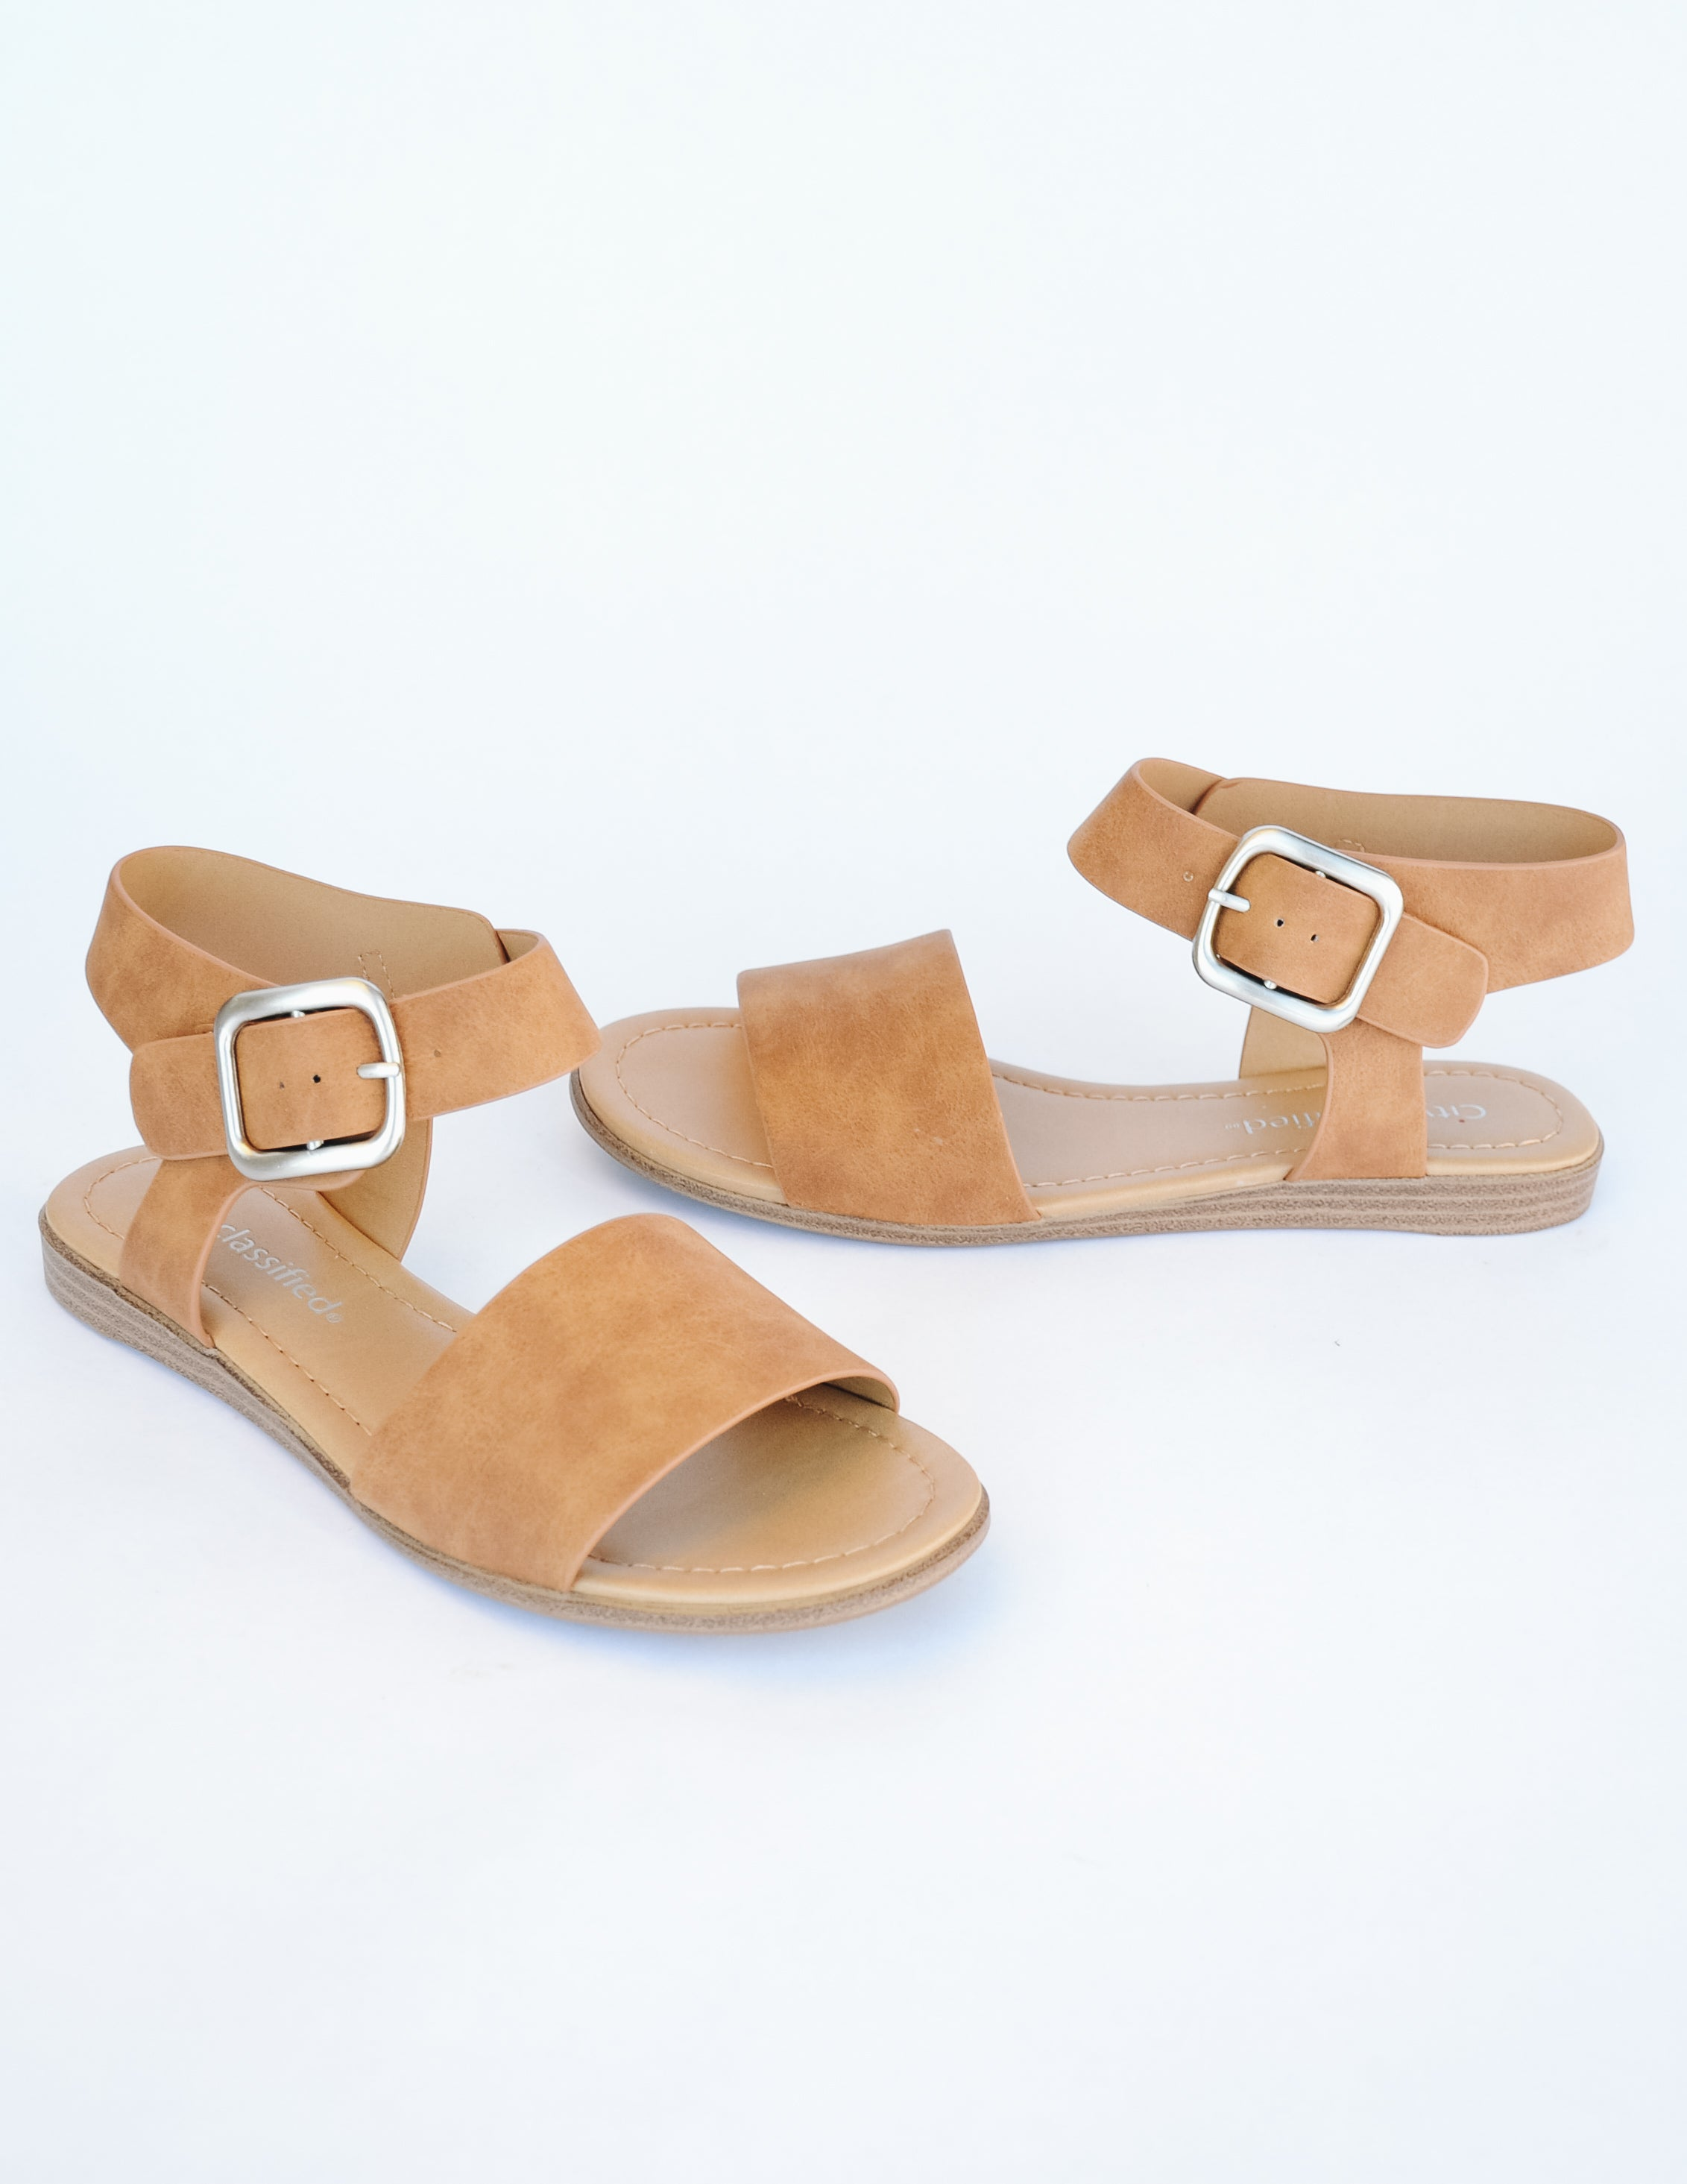 Tan sandal on white background - elle bleu shoes